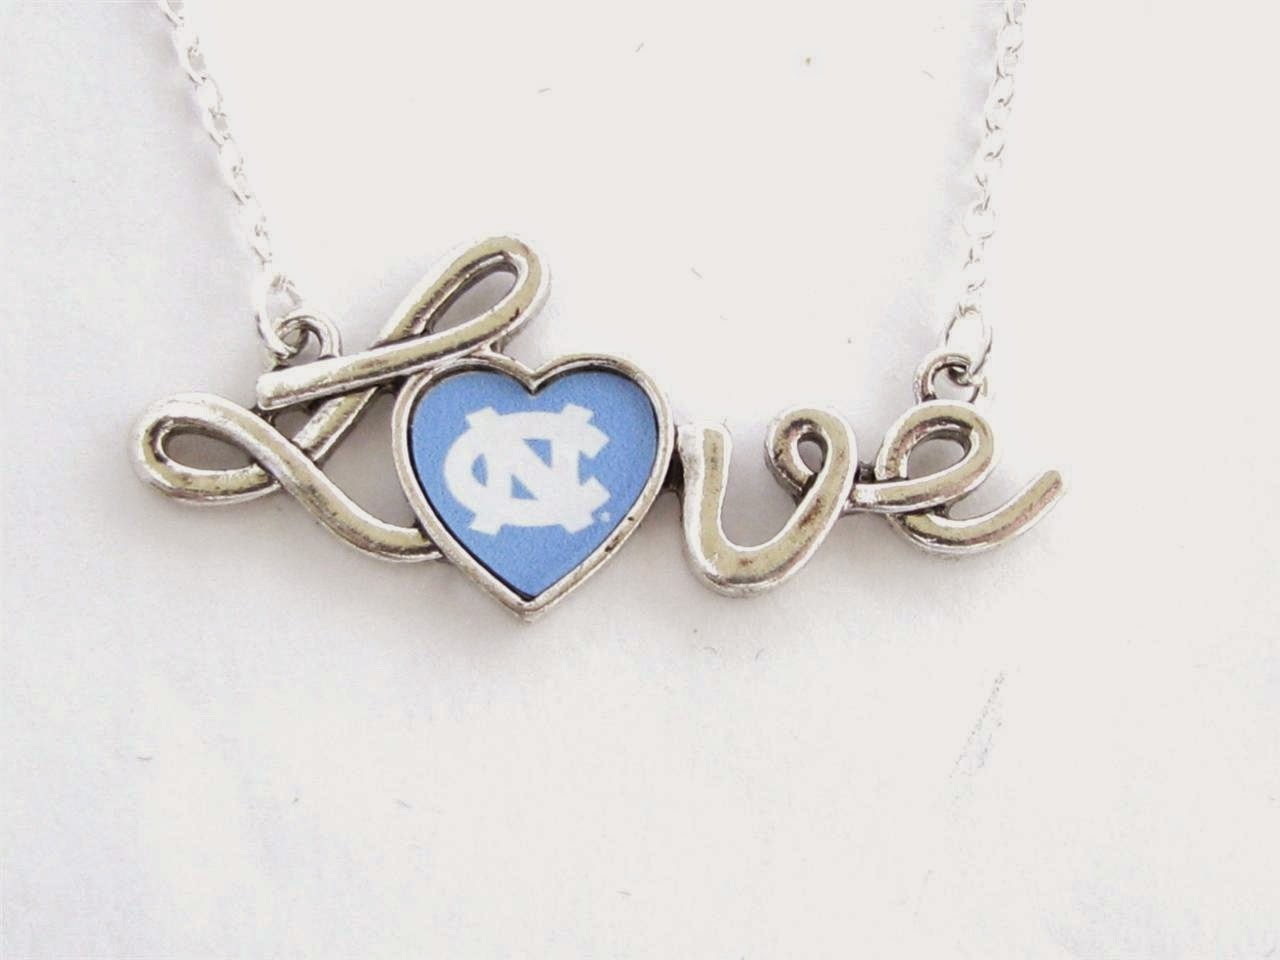 UNC Tar Heels NCAA Love Necklace